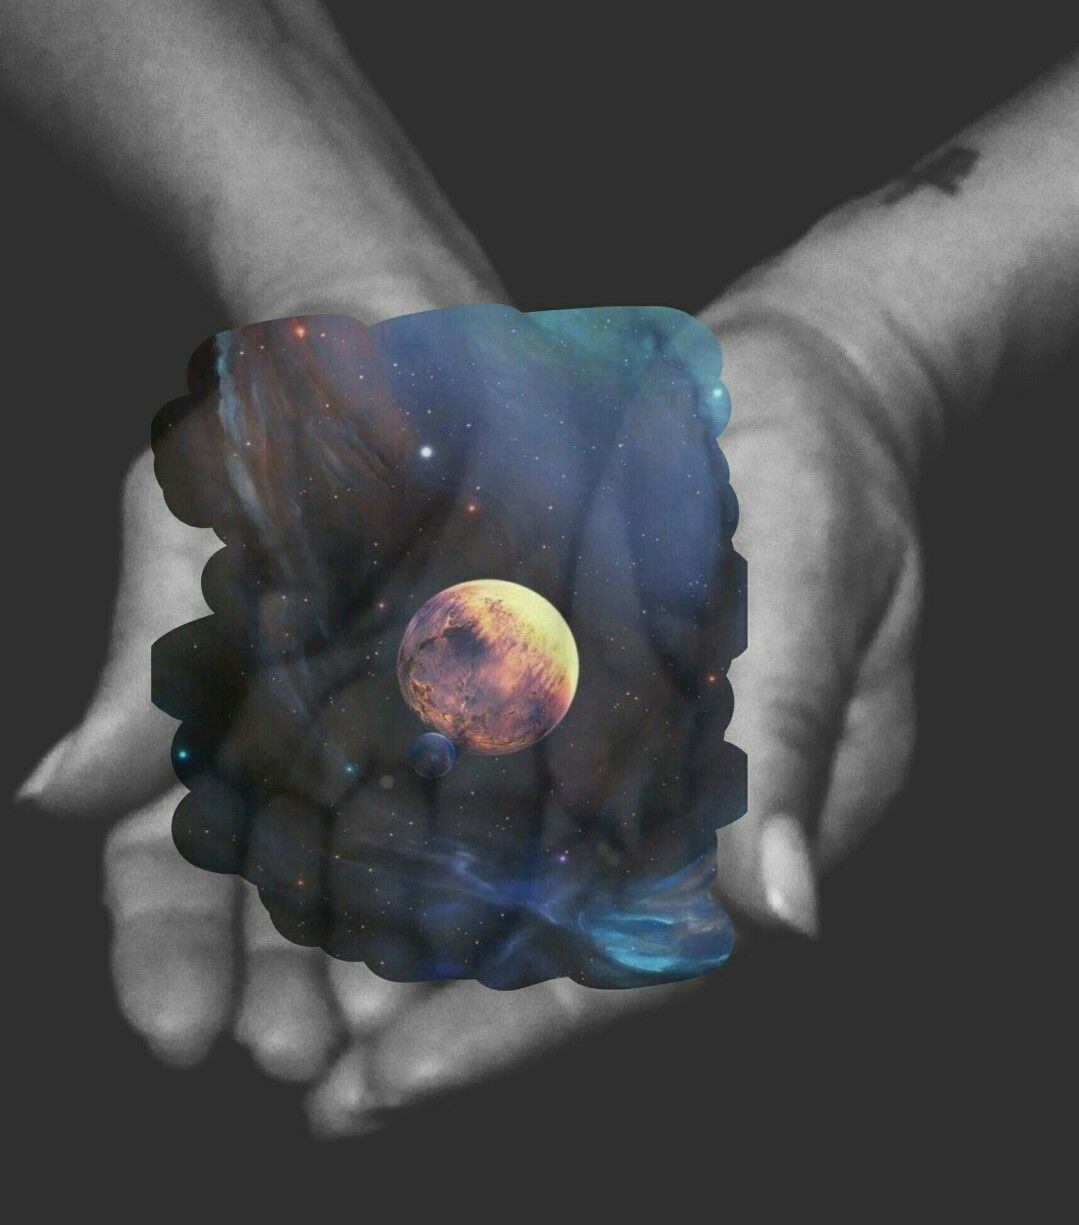 ~universe is in your hands~